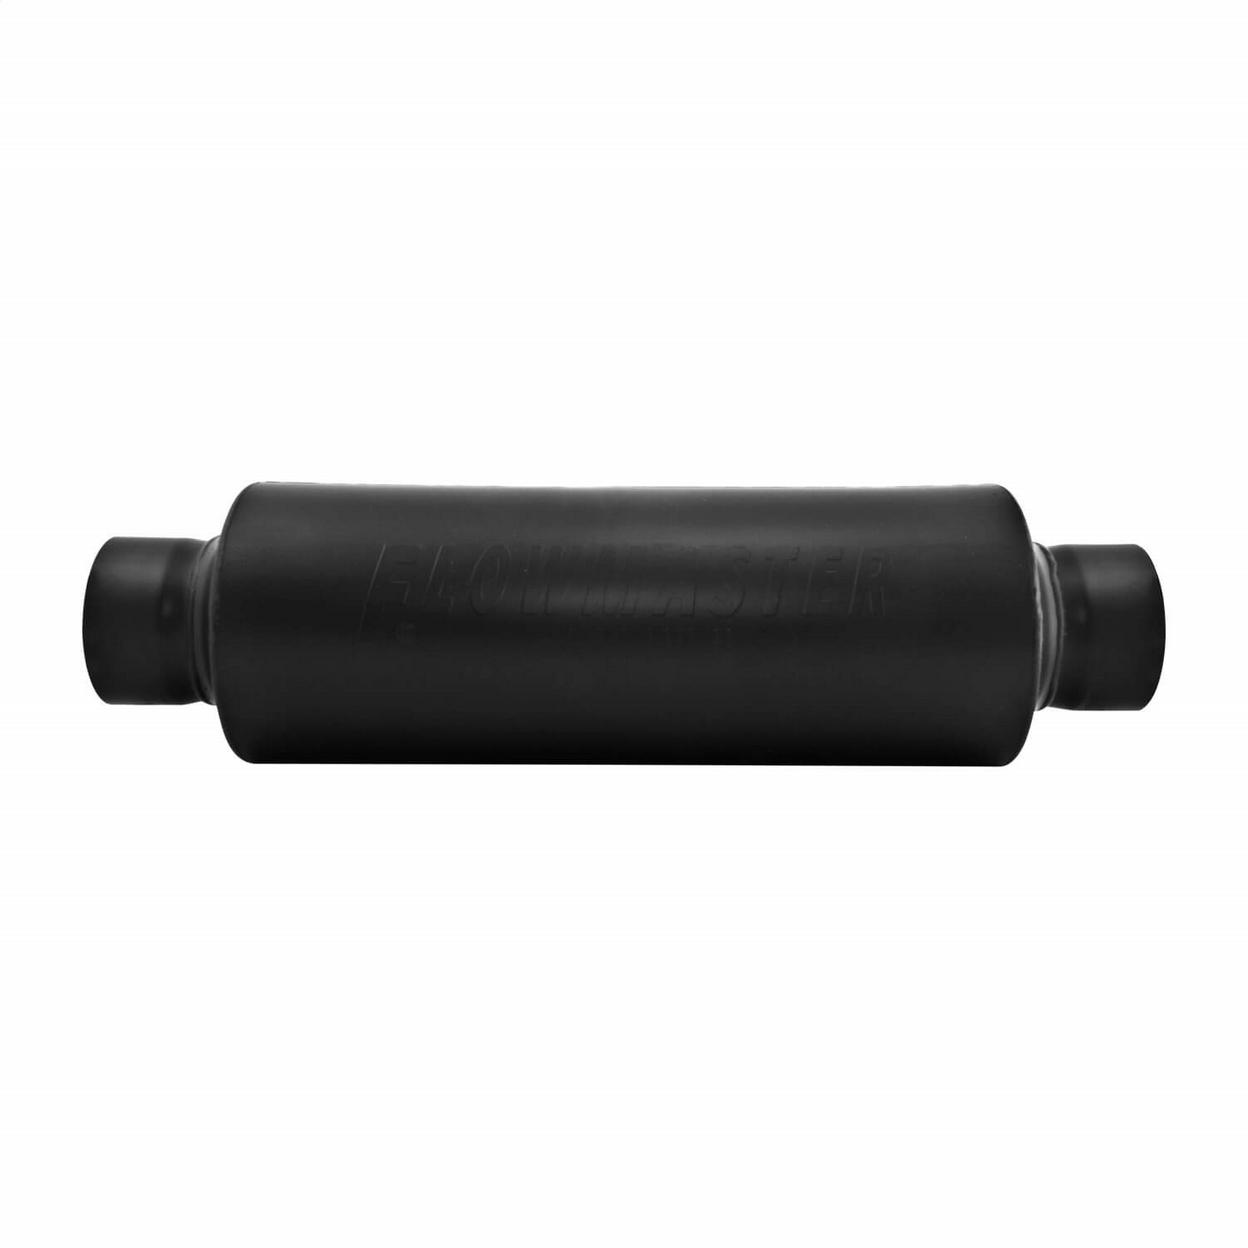 Pro Series Muffler - 5.00 Center In / 5.00 Center Out - Moderate Sound